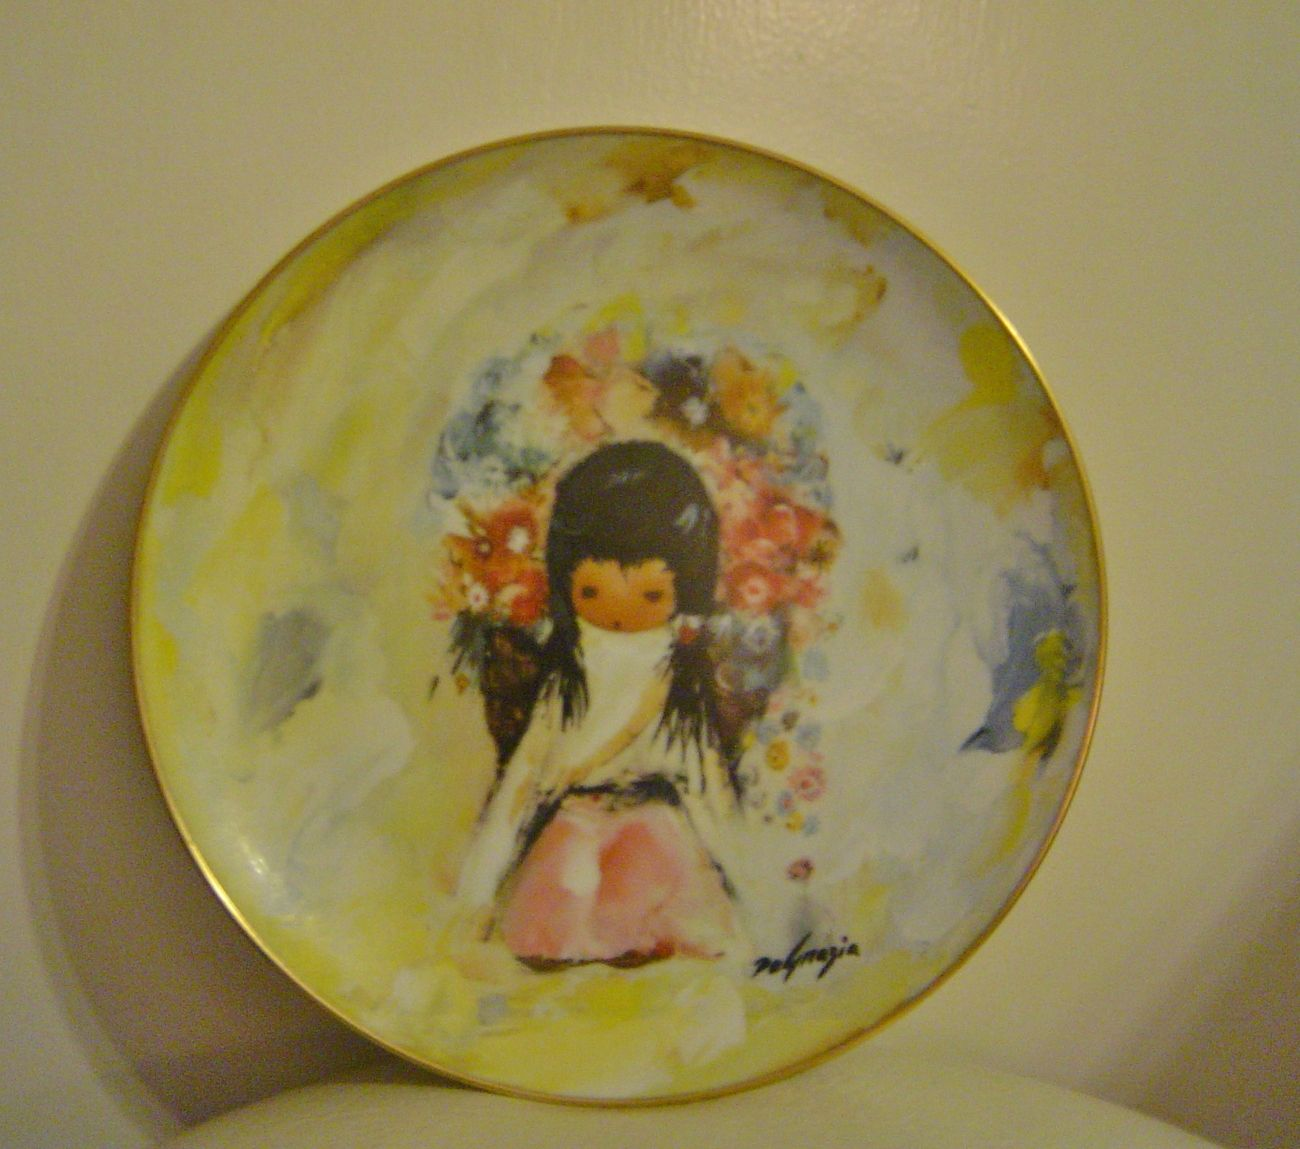 Ted DeGrazia Flower Girl Plate Collectors Limited Edition at MyTexasTreasure on Bonanza